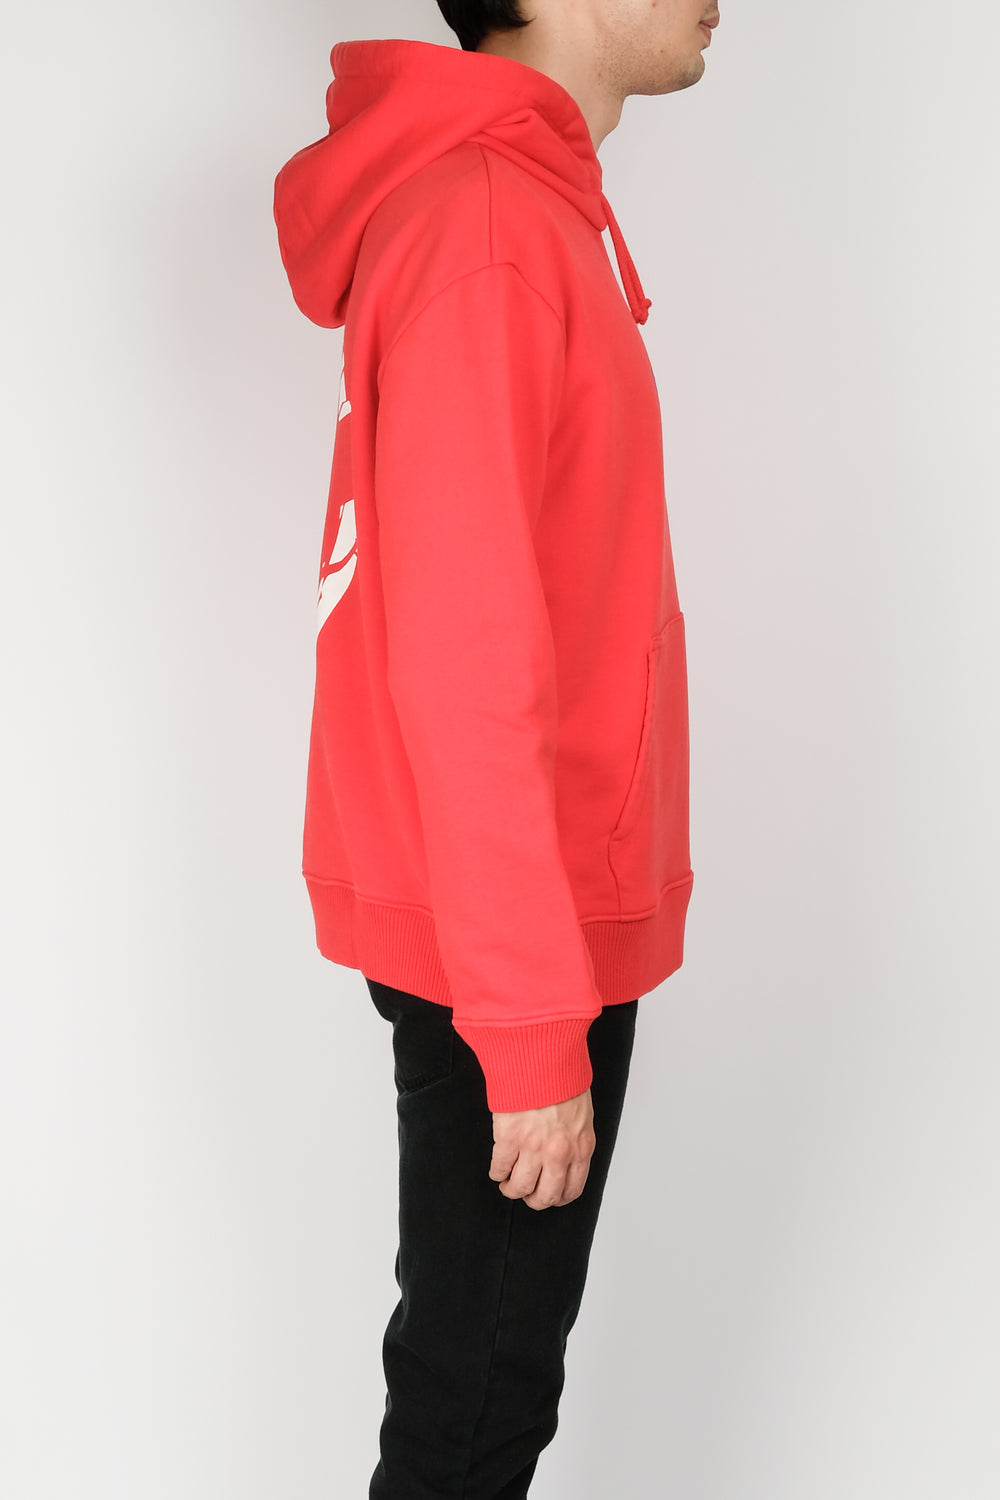 Resort Corps Fractured Hooded Sweater In Red